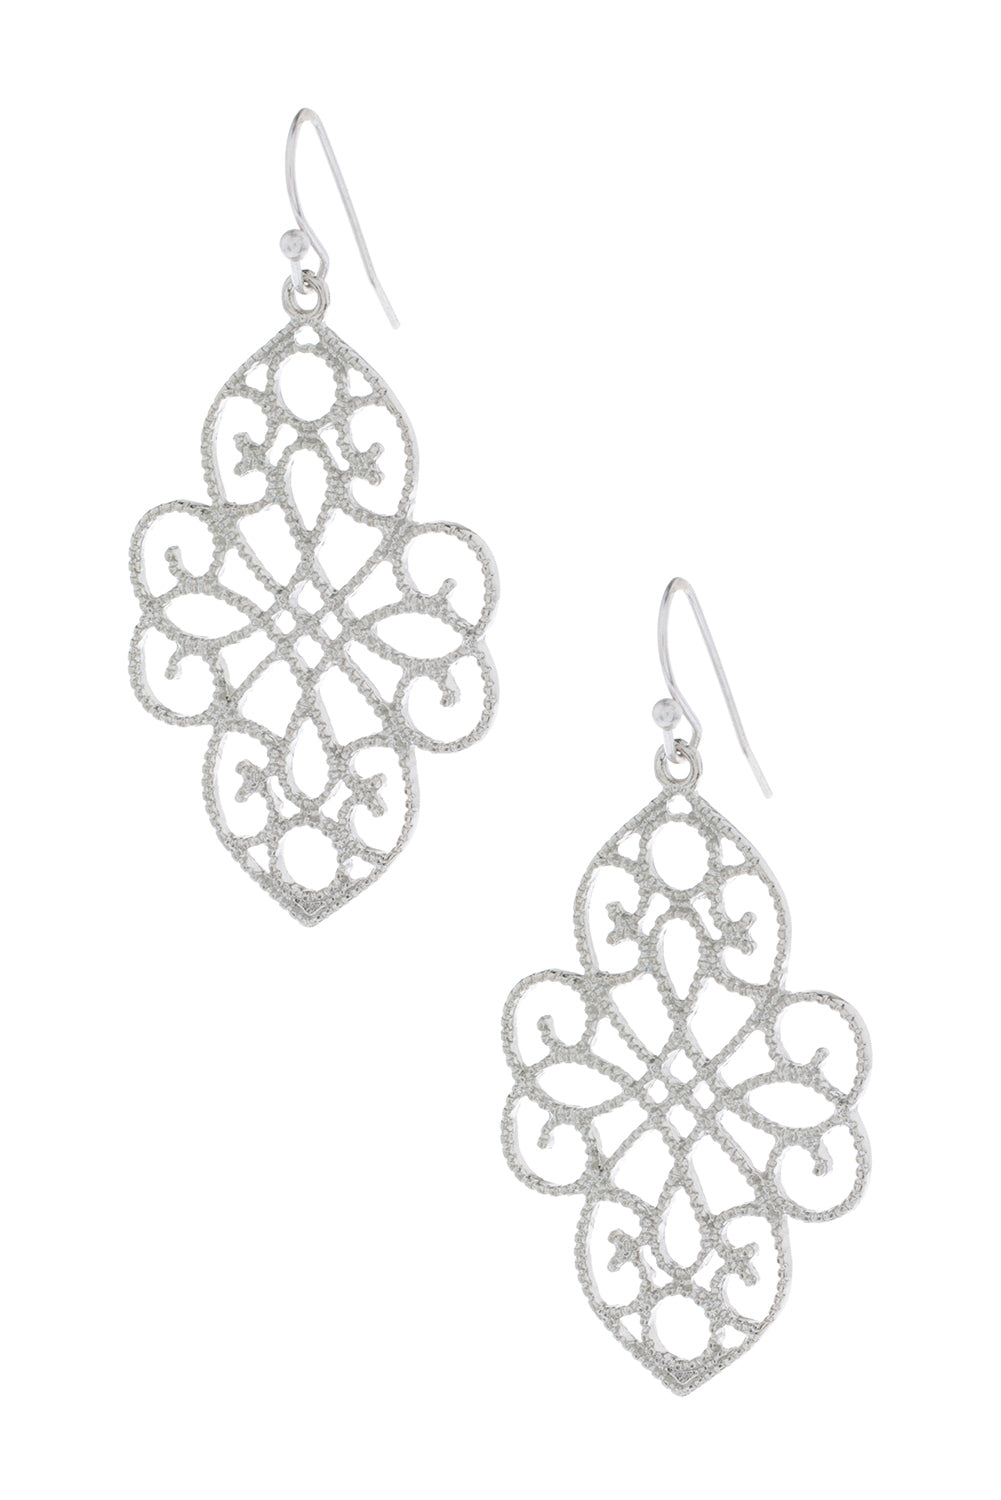 Type 2 Fragile Elegance Earrings